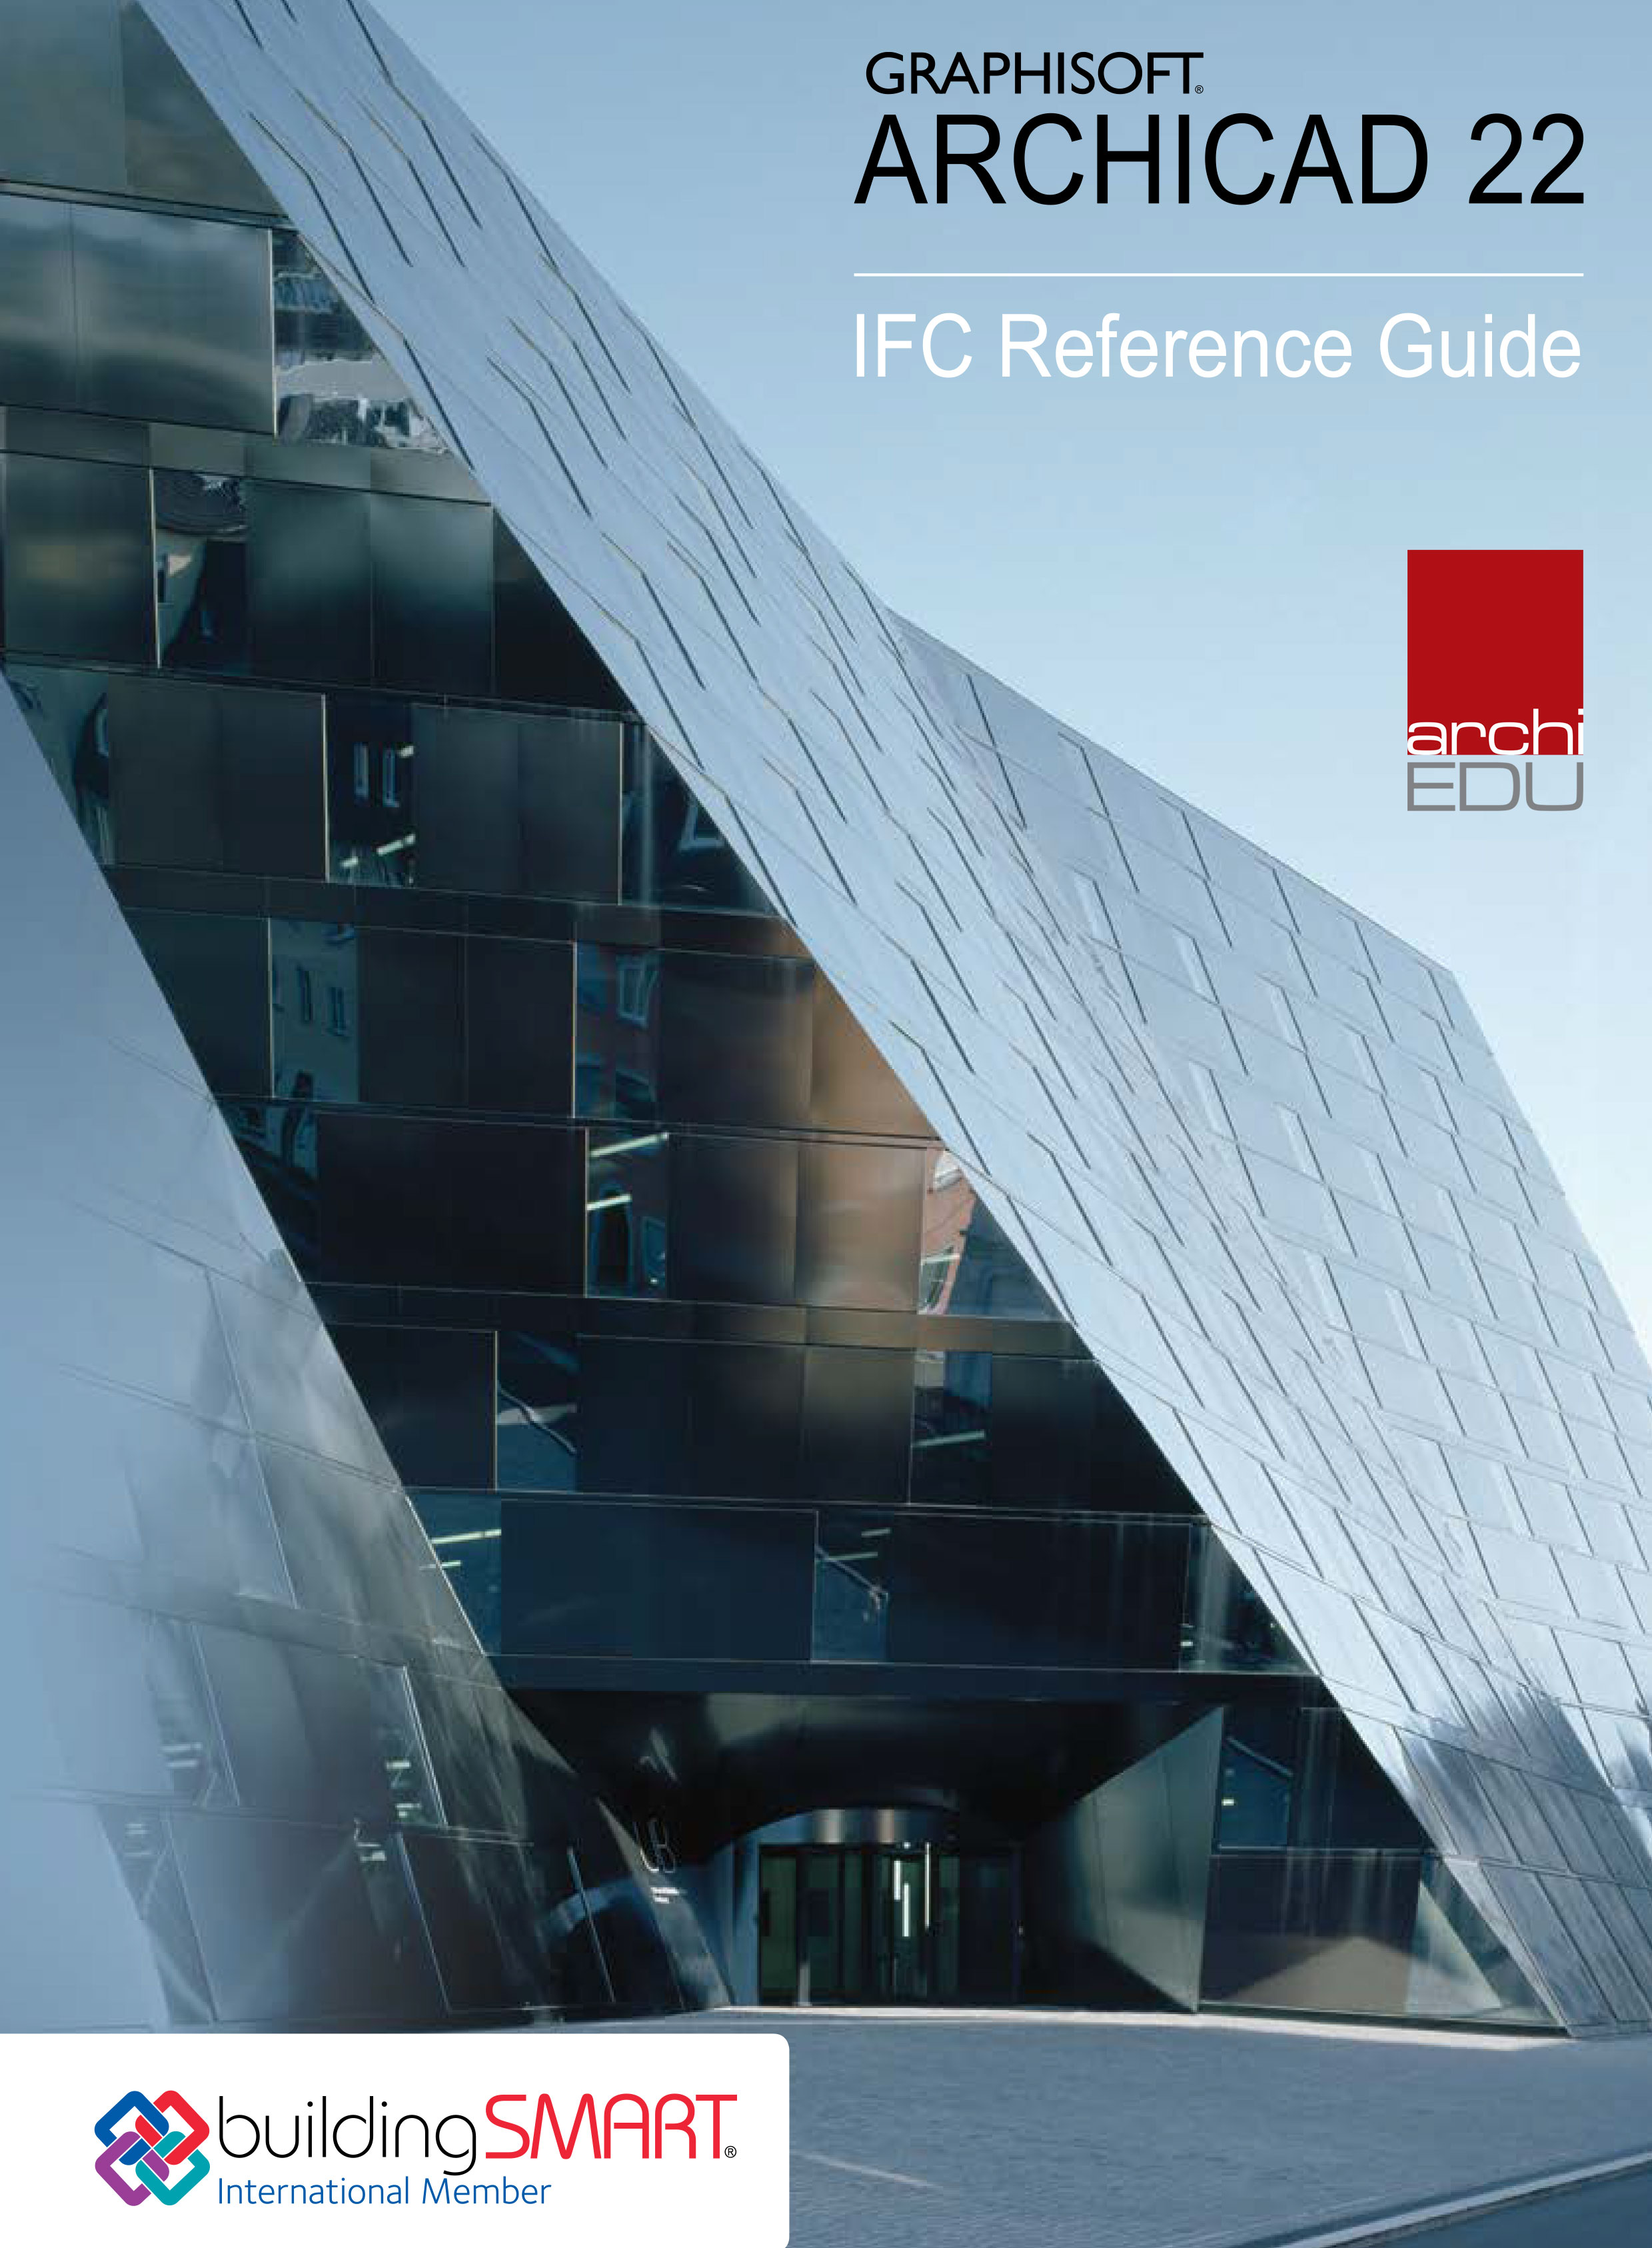 IFC-Reference-Guide-for-ARCHICAD-22.jpg